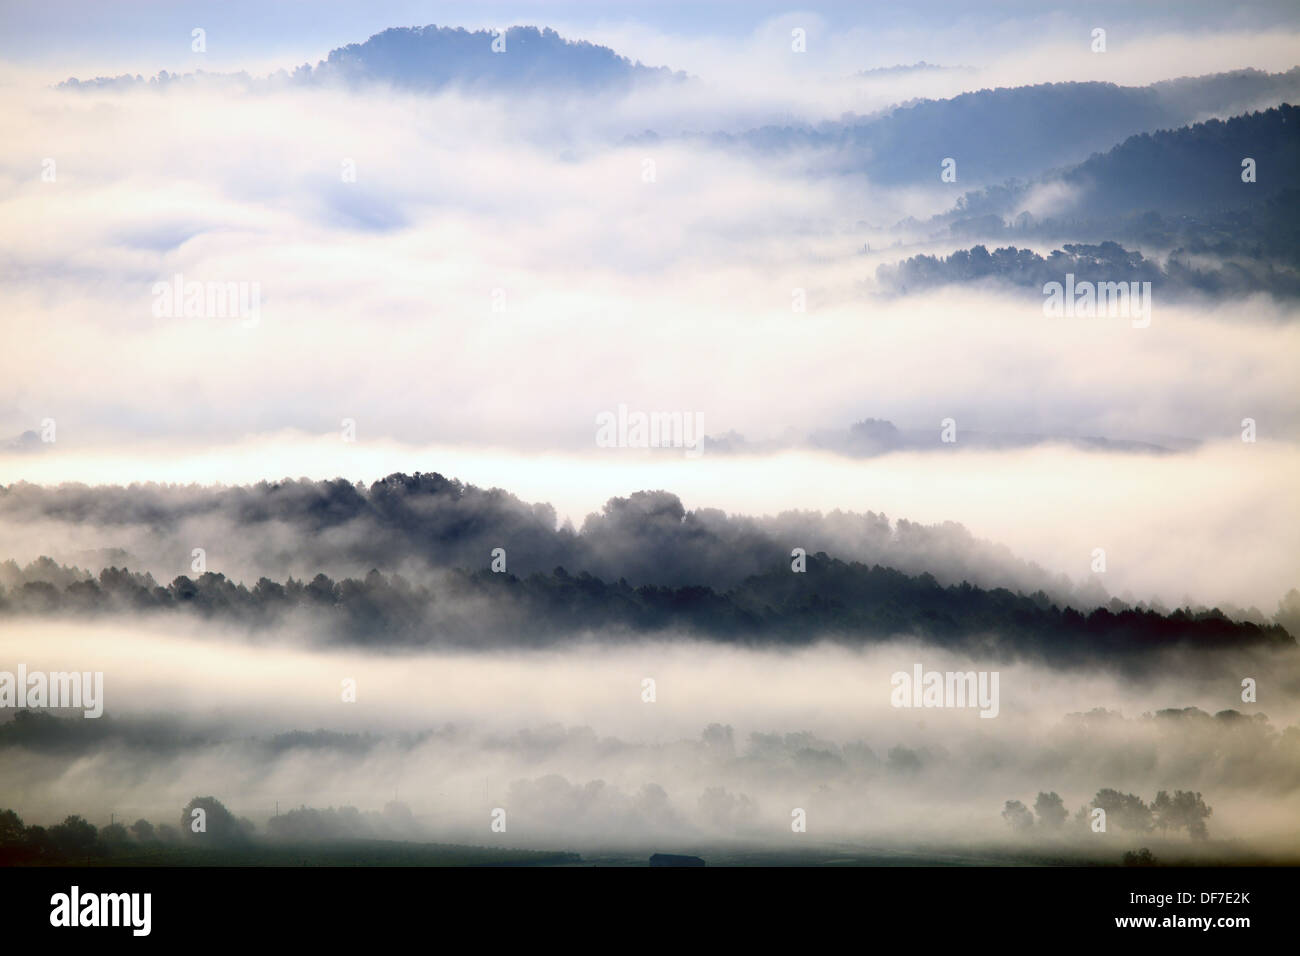 Misty sunrising above the Provence landscape. - Stock Image